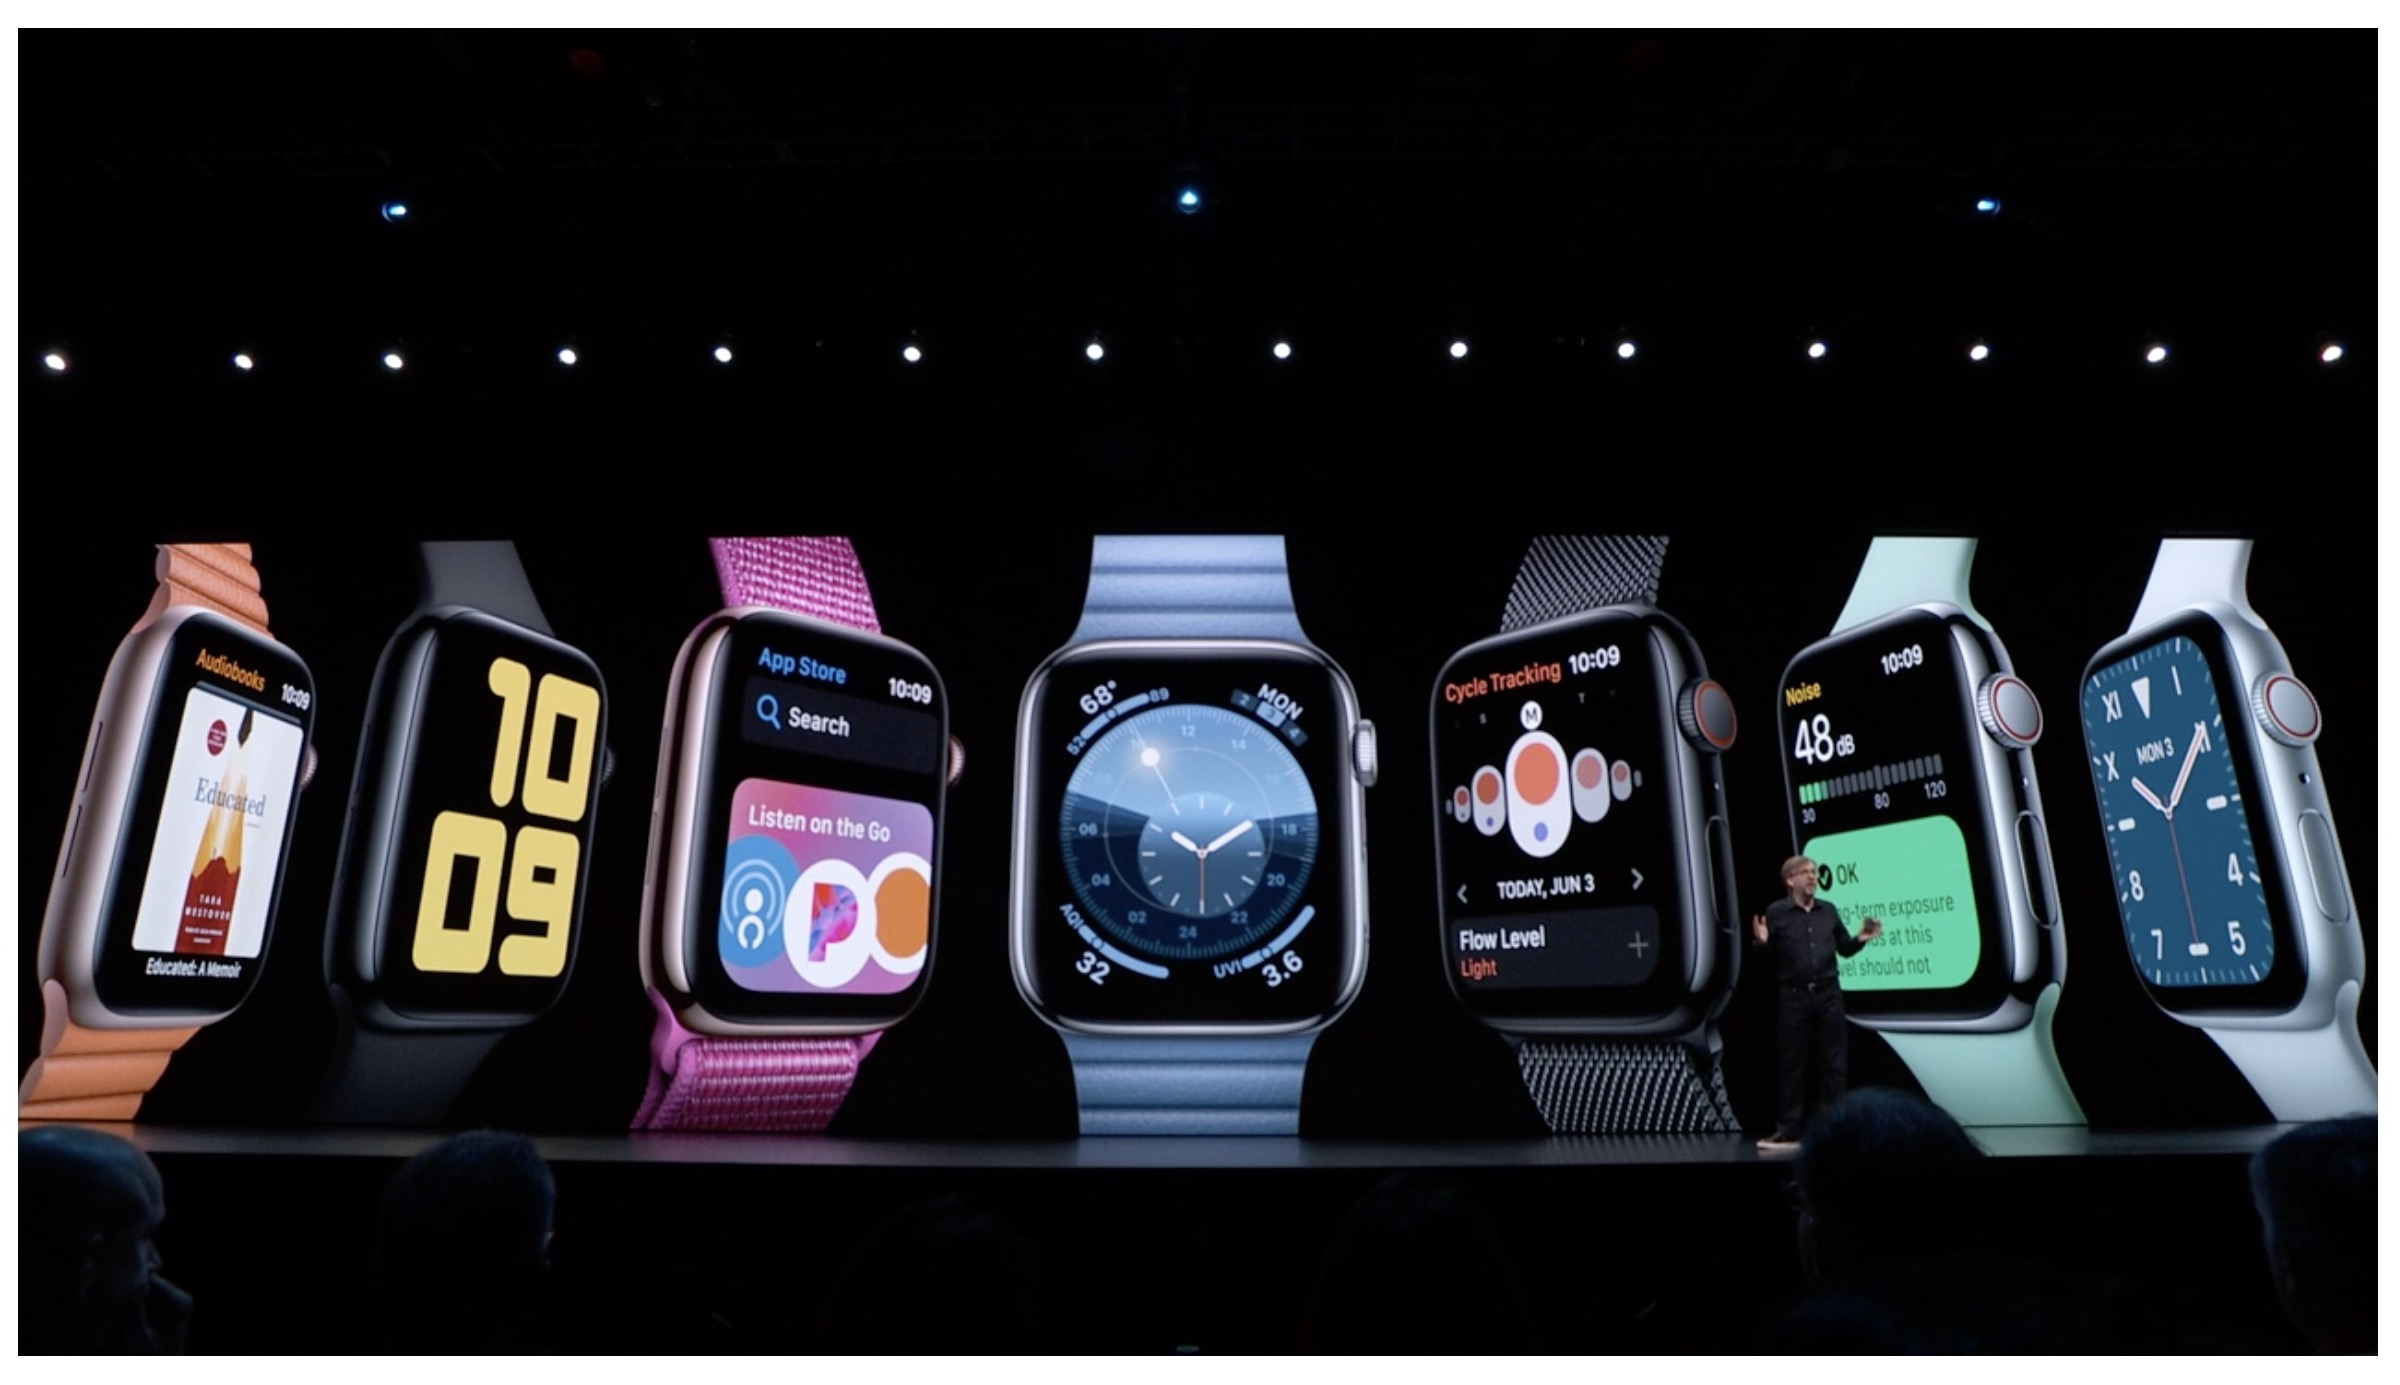 Watch Os 6 Features 5